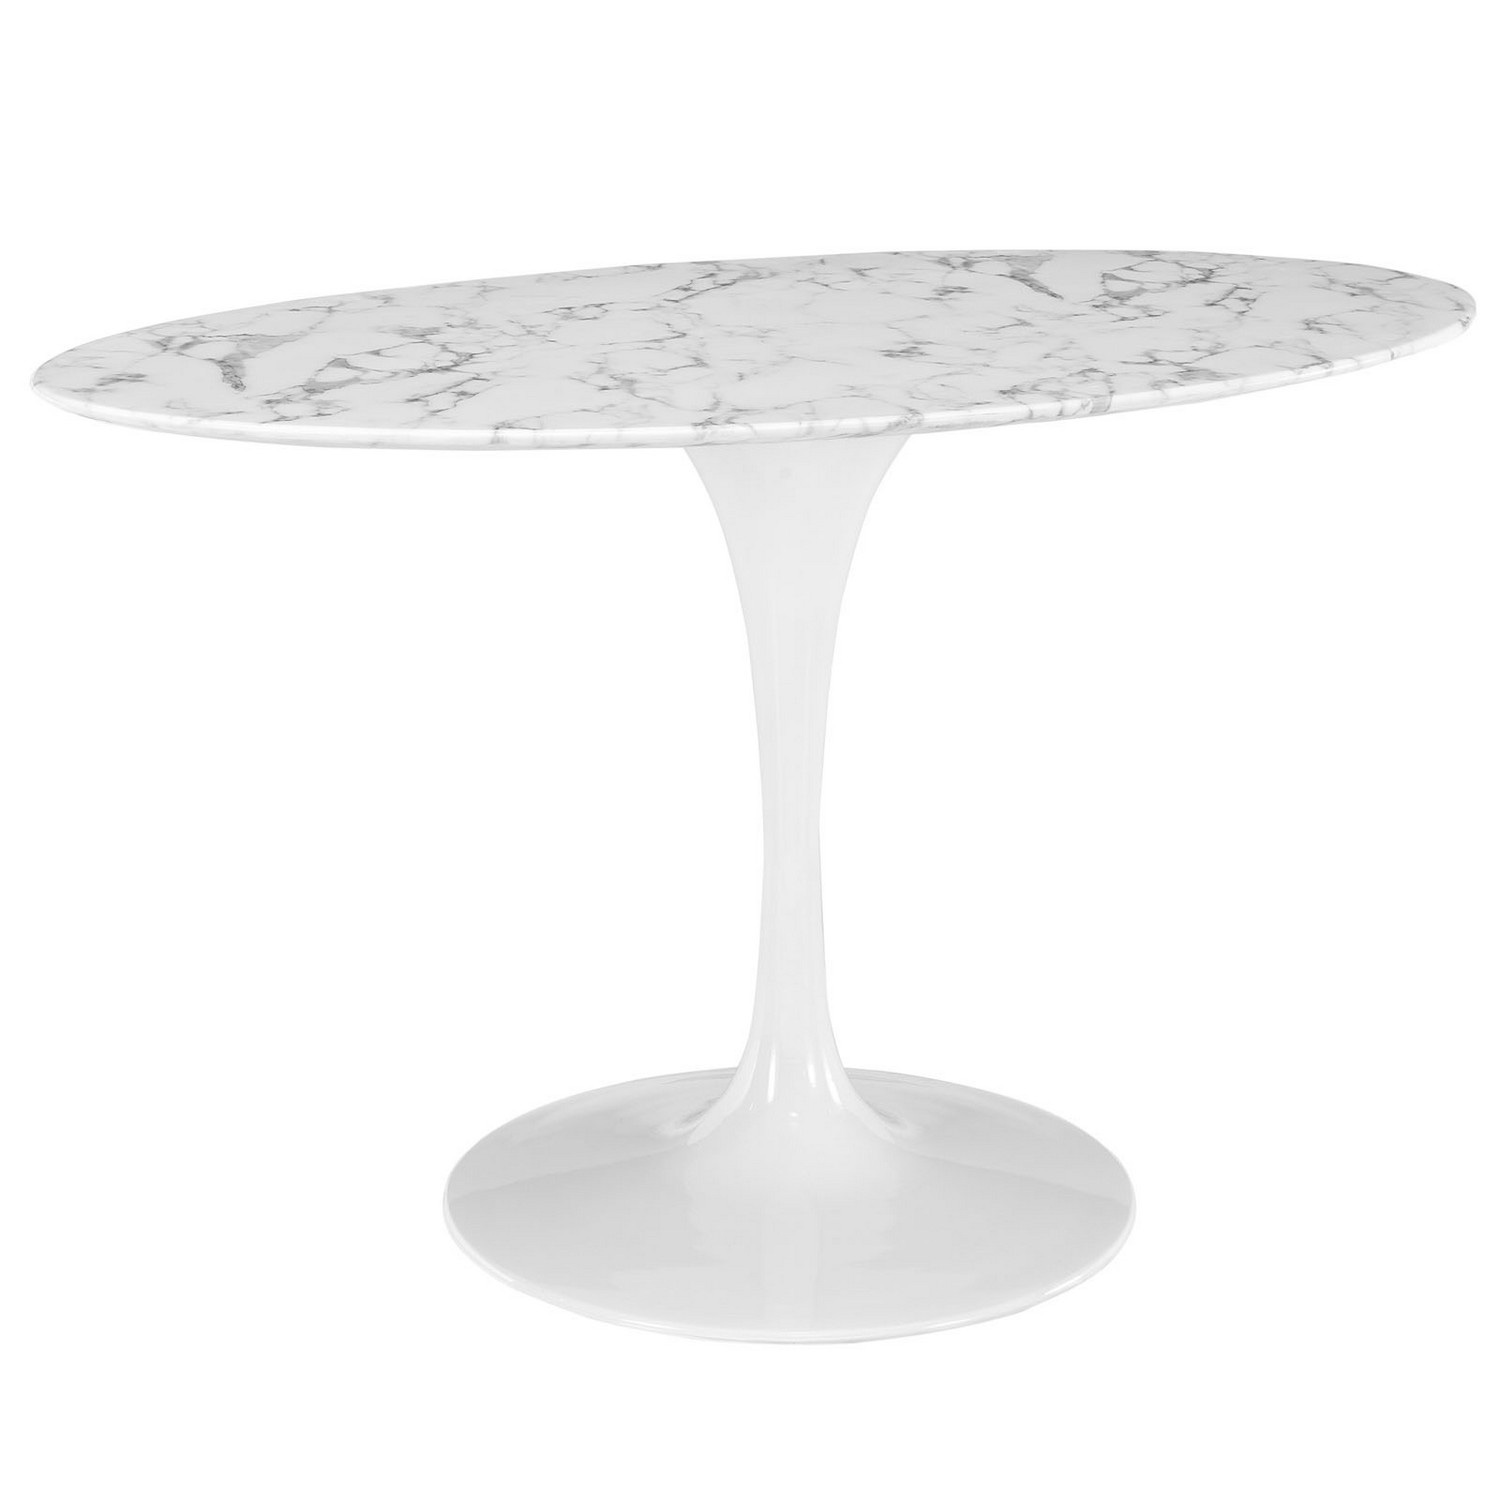 Modway Lippa 54 Oval-Shaped Artificial Marble Dining Table - White